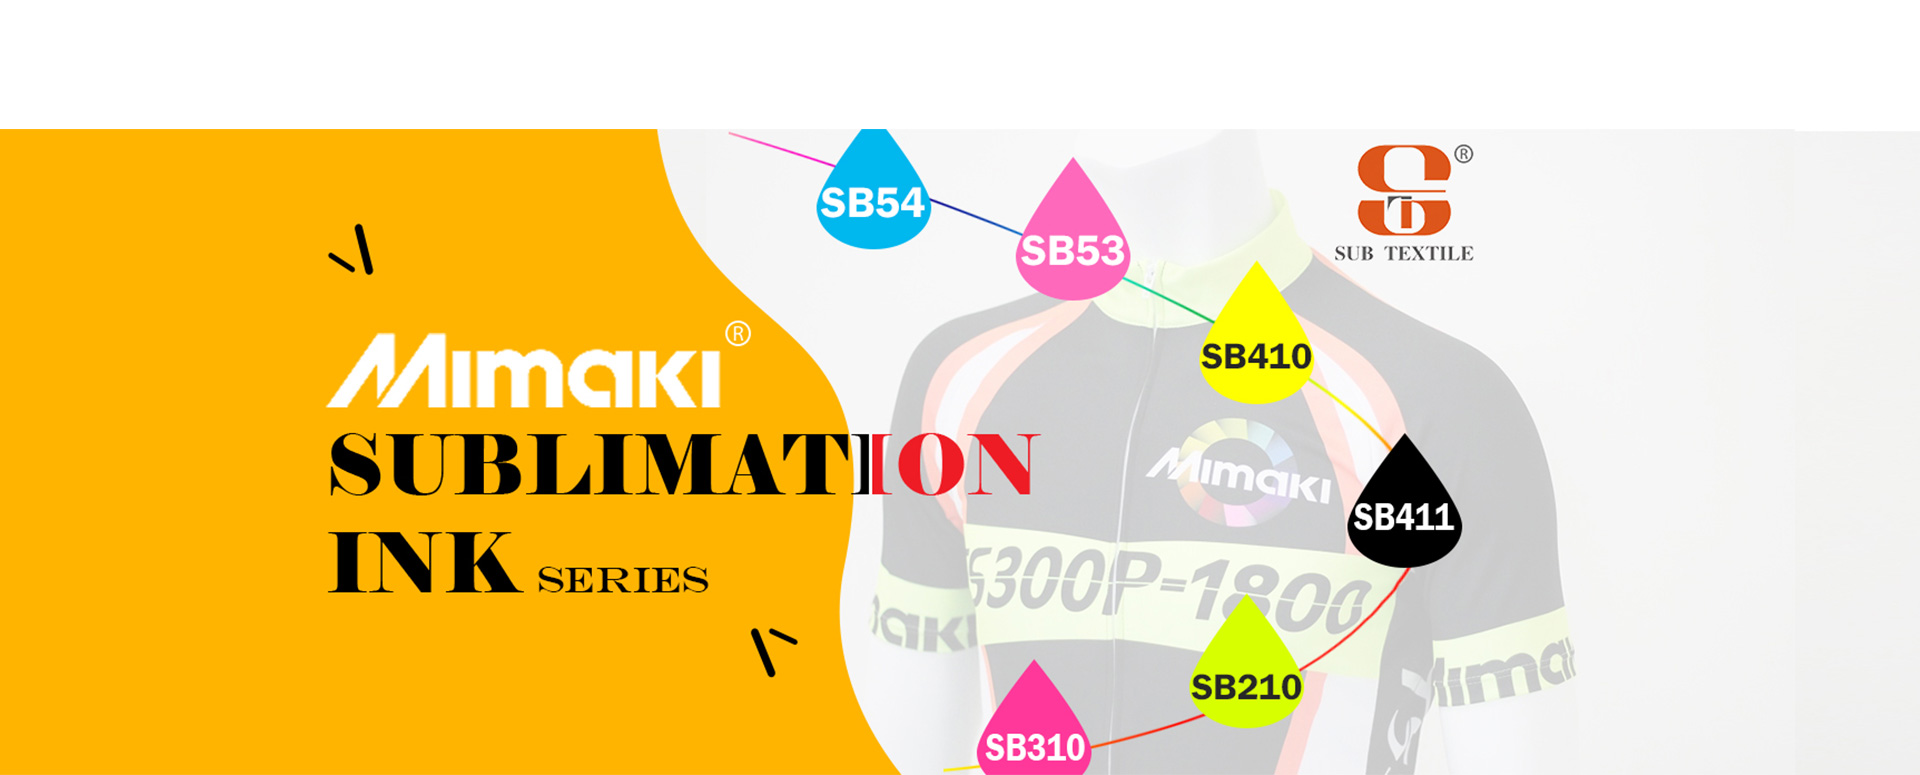 What do you know about Mimaki sublimation ink?